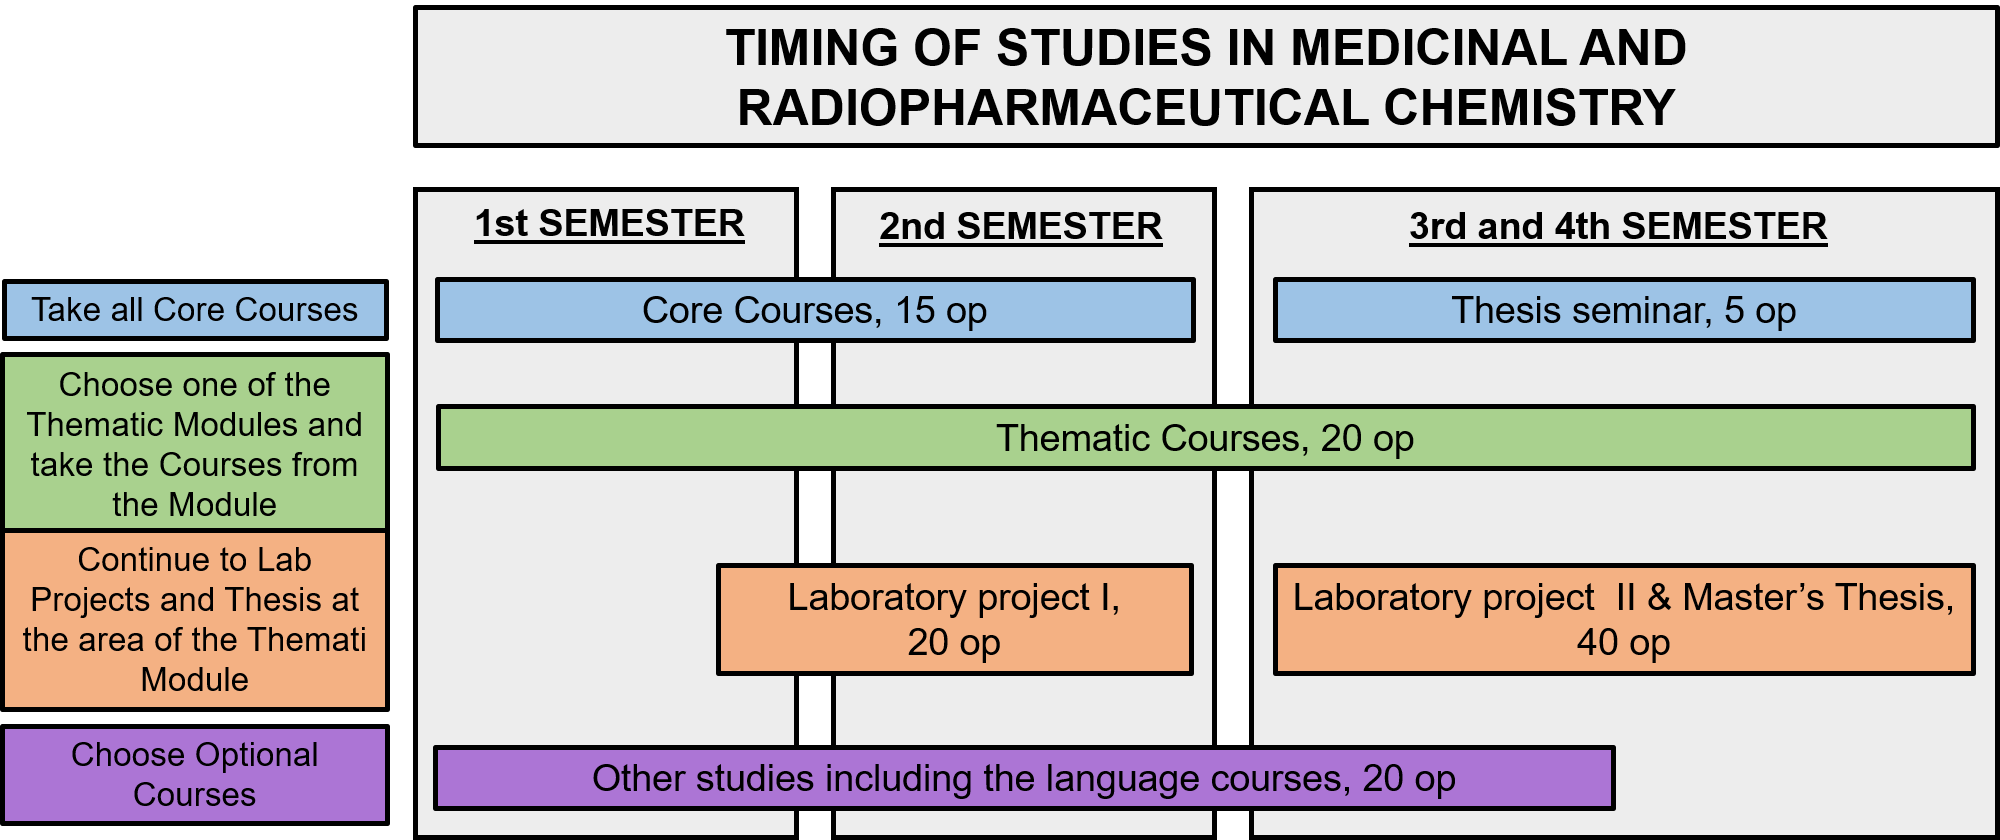 Timing of studies in the programme